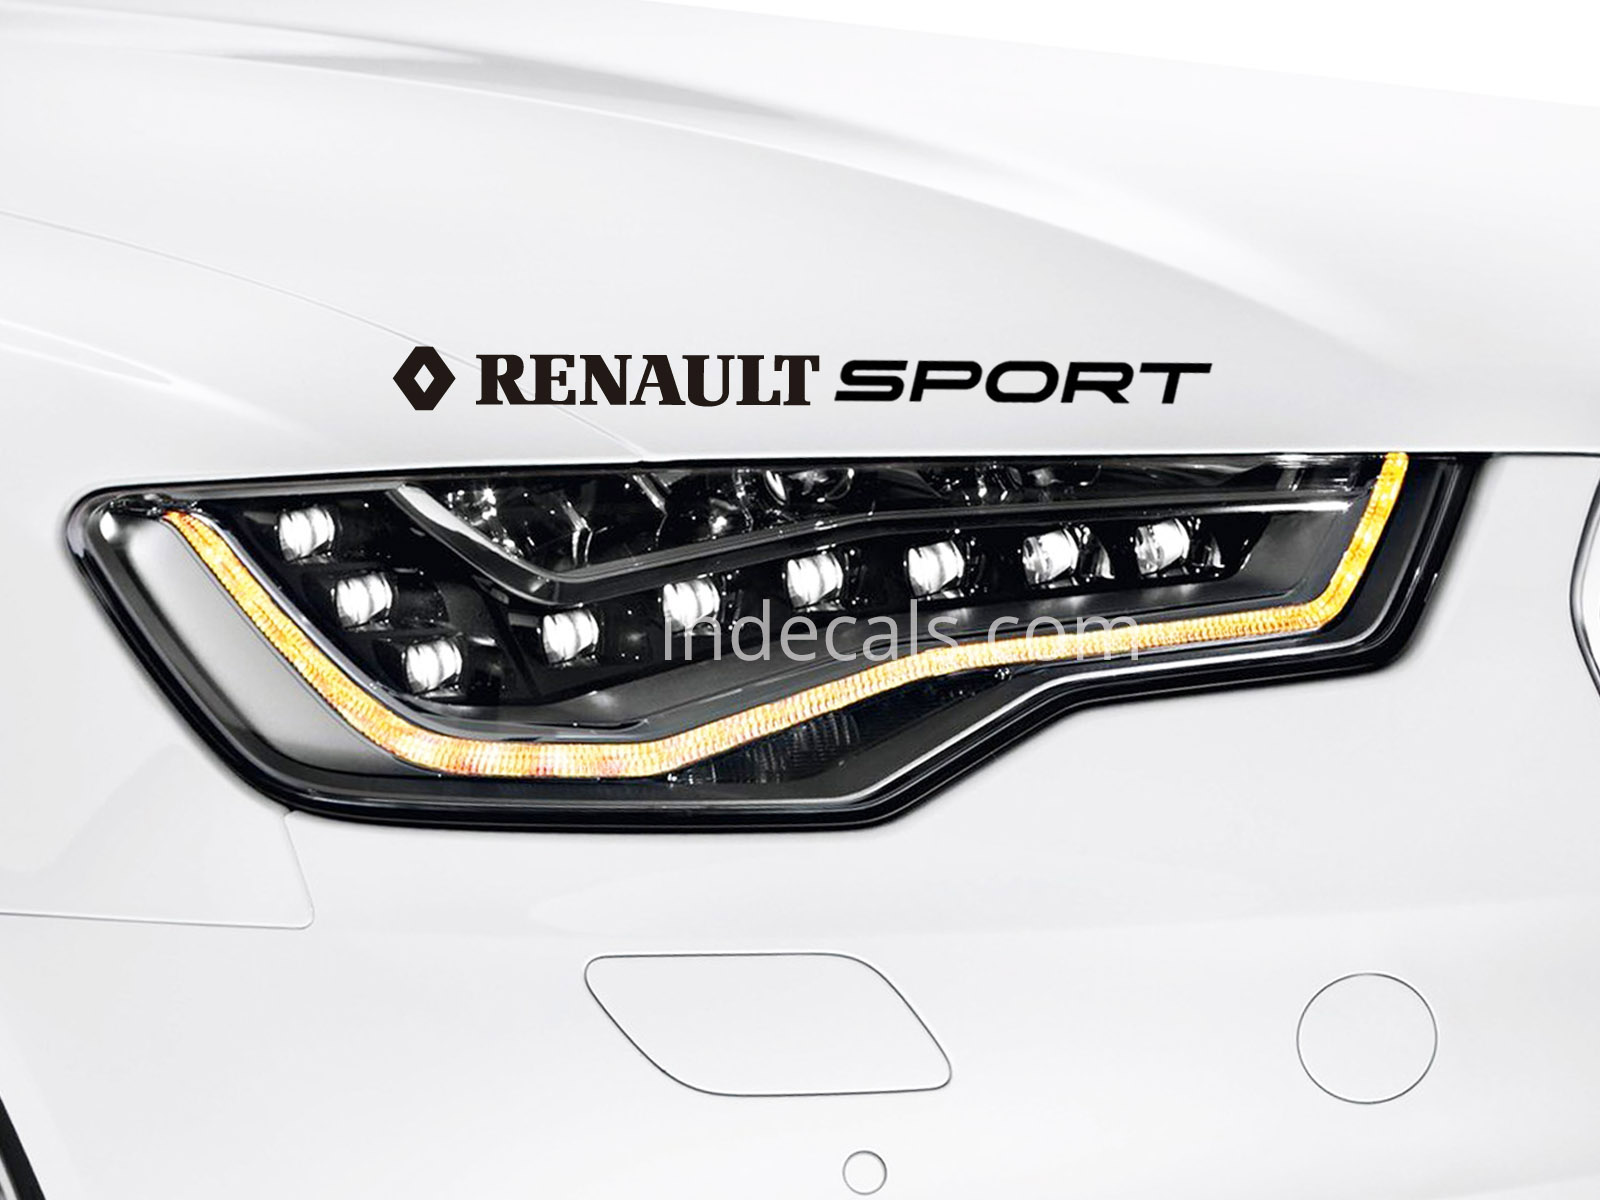 1 x Renault Sport Sticker - Black